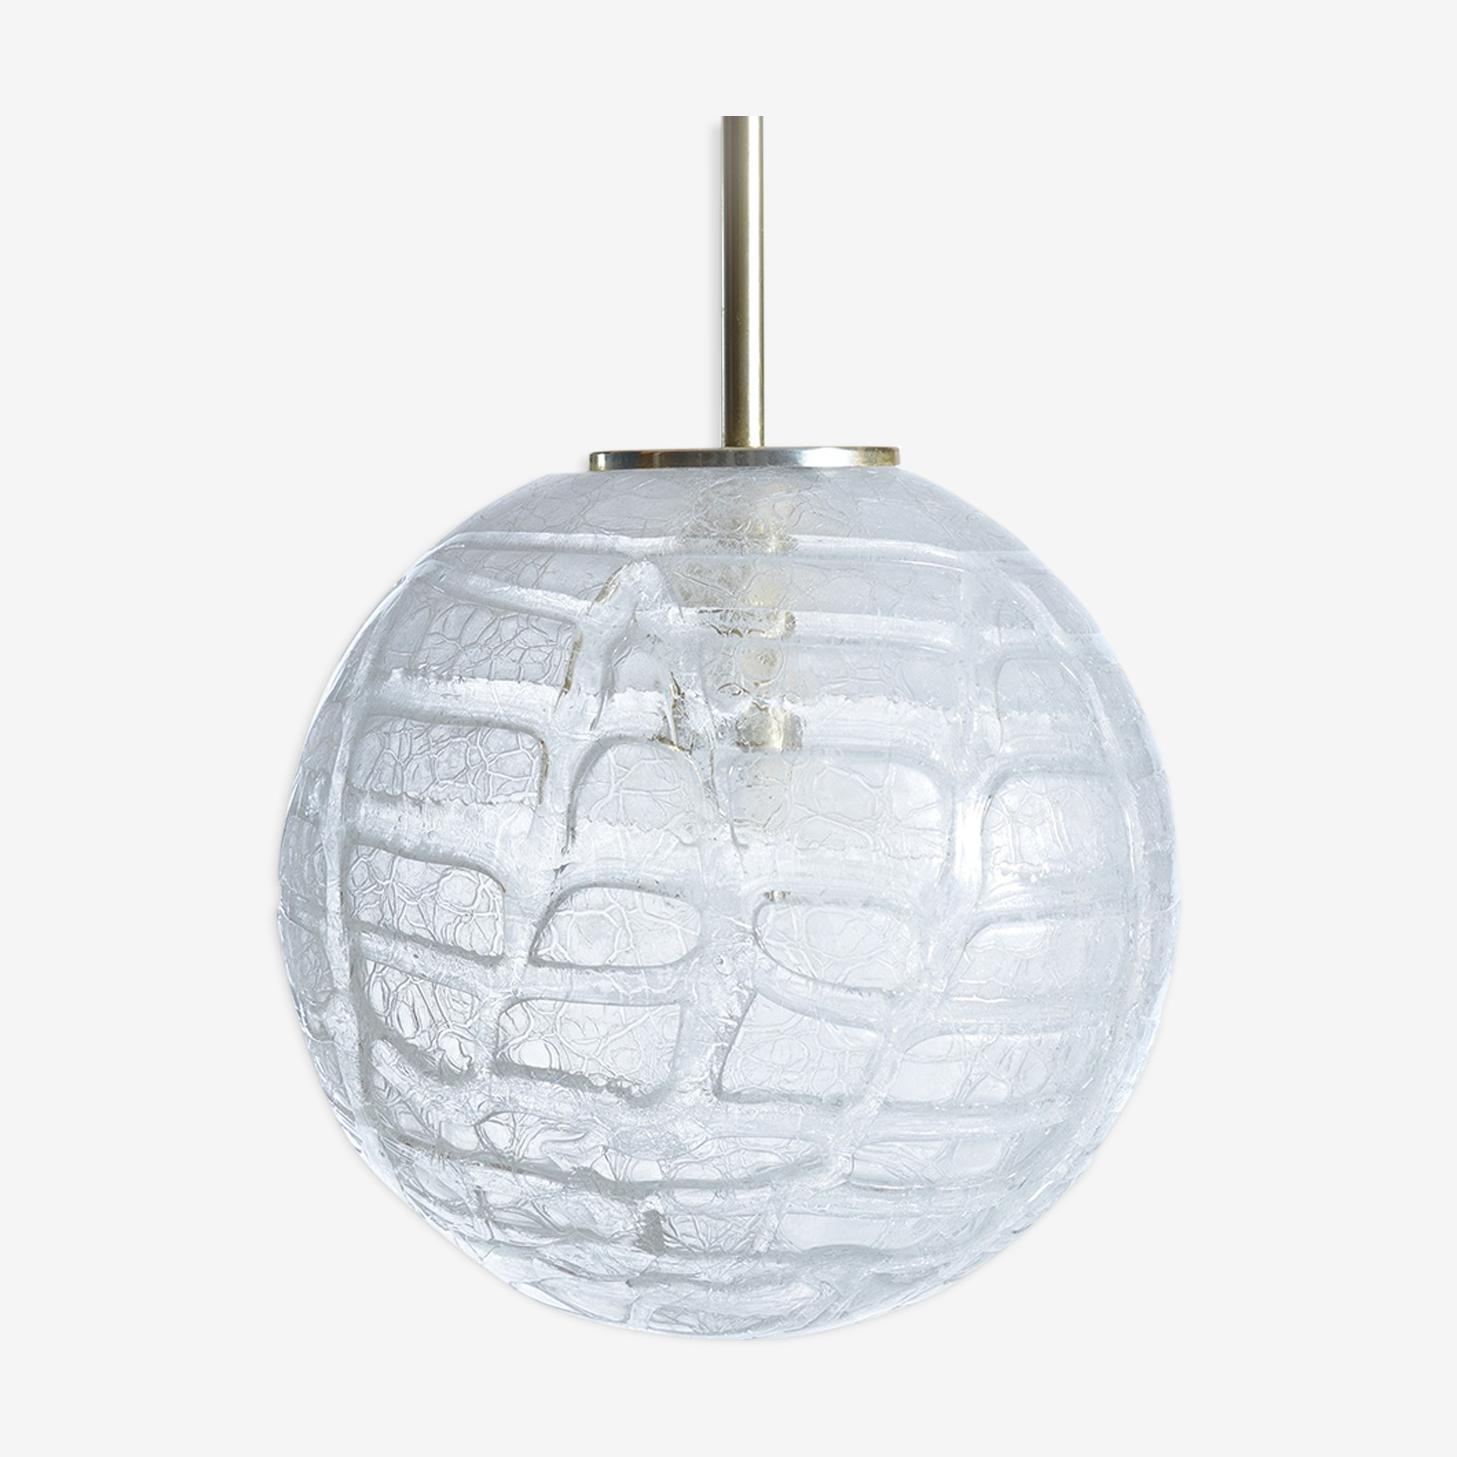 Large Ball Frosted Glass Ceiling Light by Doria, Germany 1970s